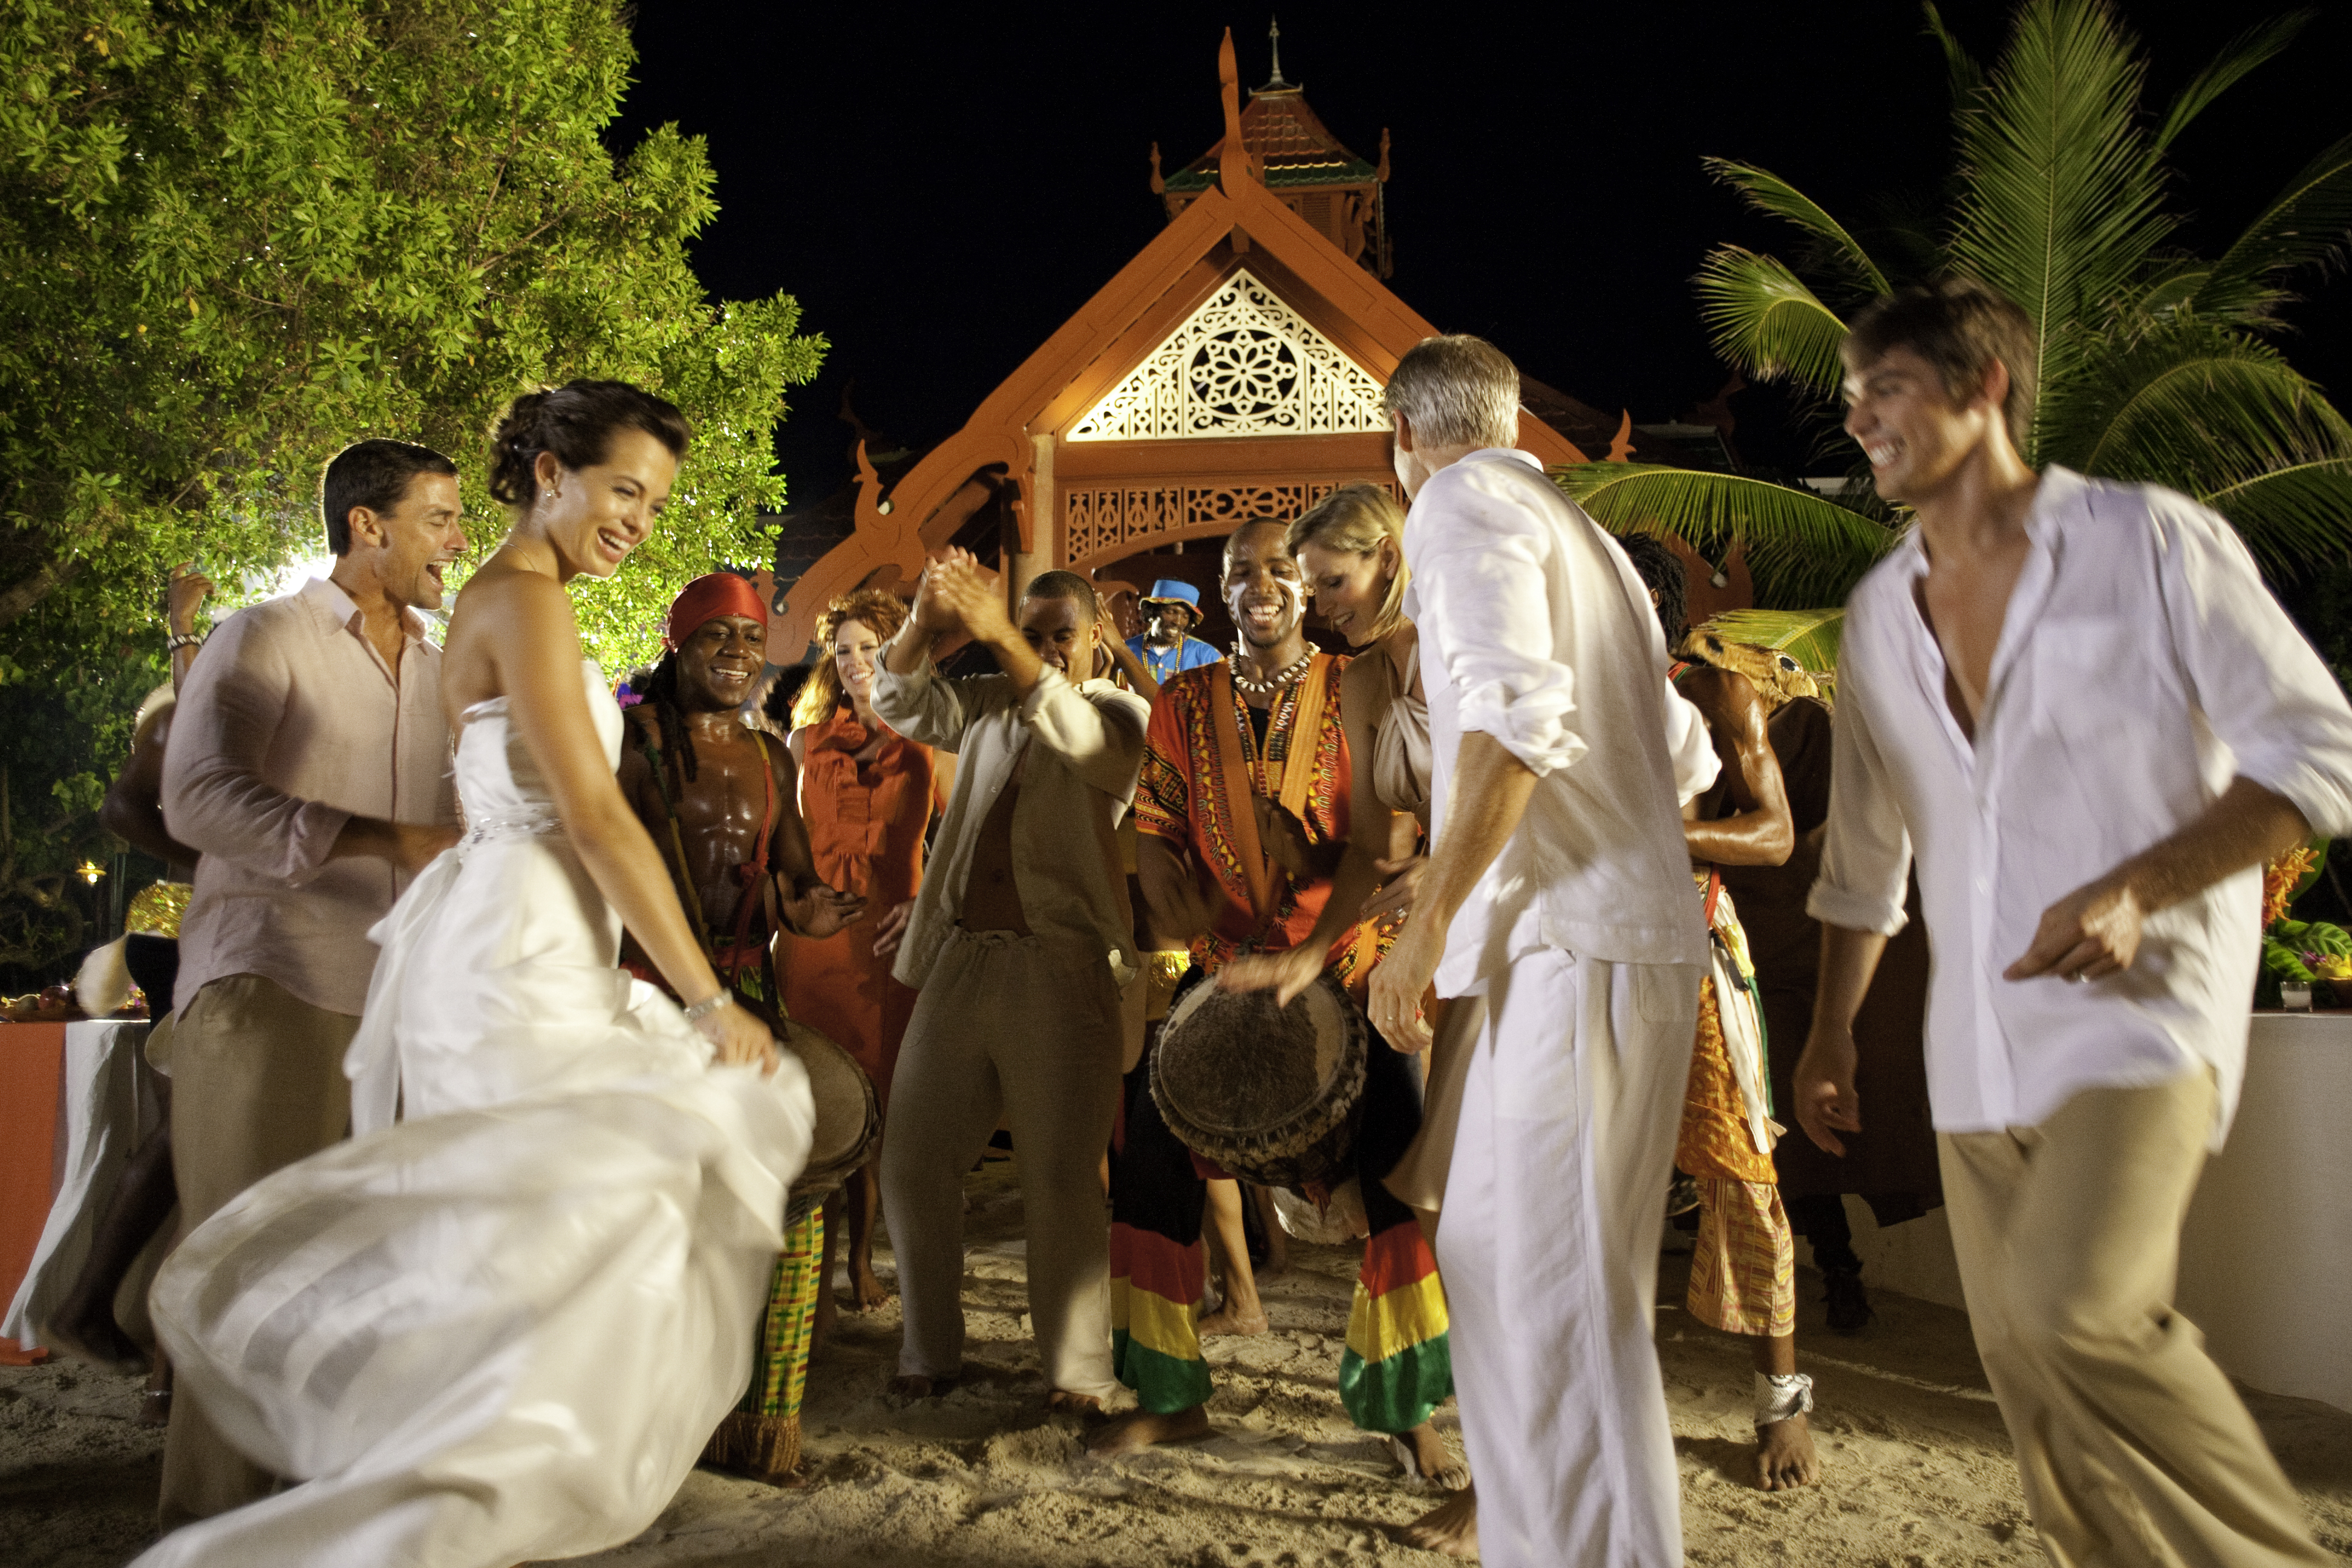 Private Island Destination Wedding Reception at Sandals Royal Caribbean in Jamaica